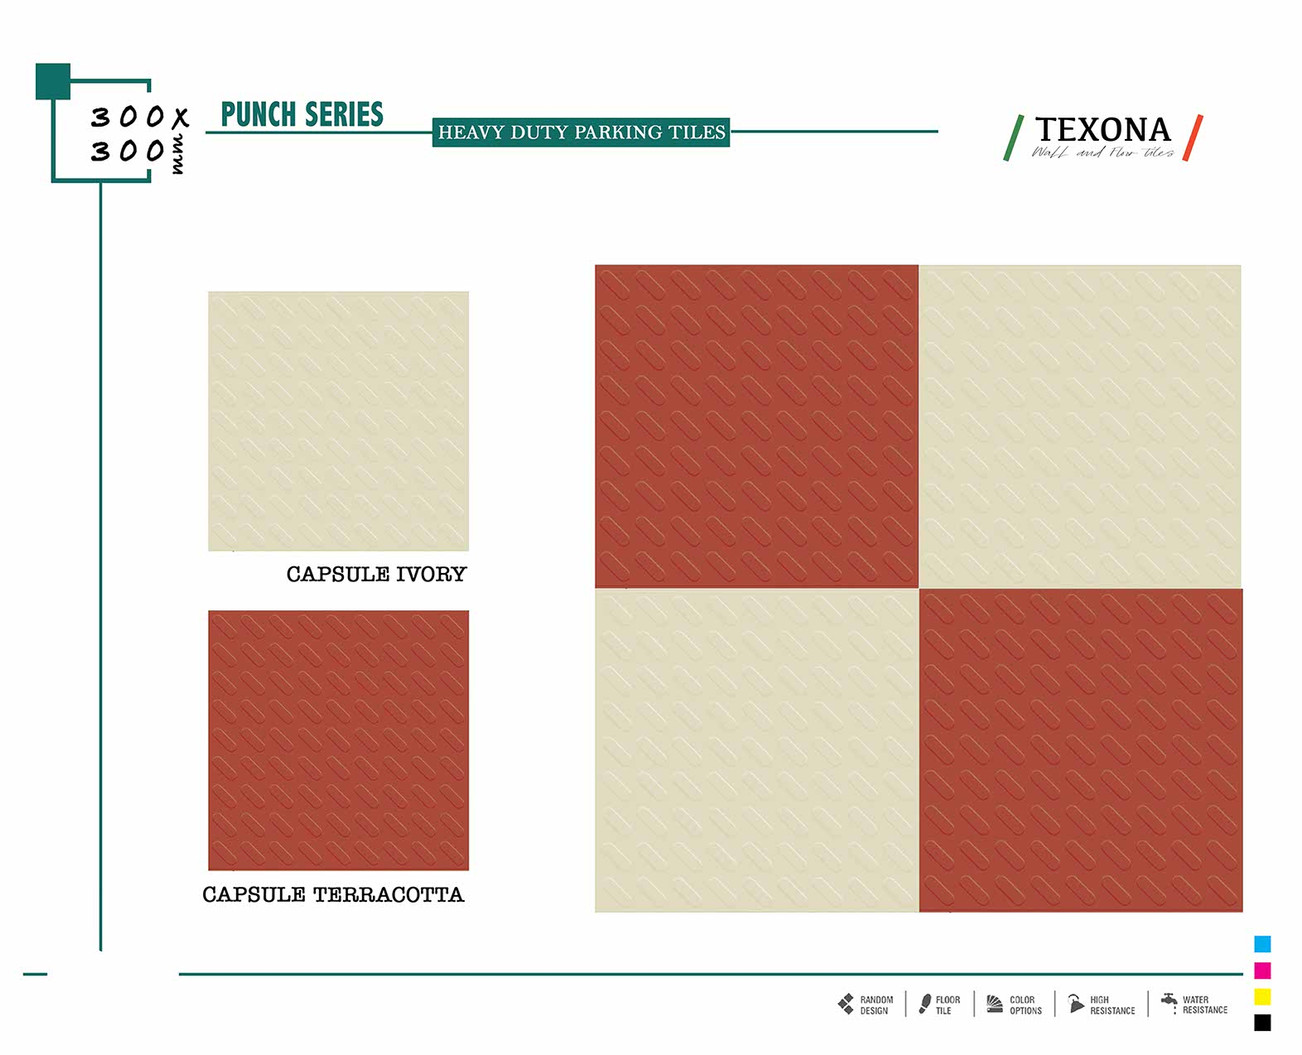 12X12 IVORY & TERRACOTTA PARKING_Page_3_